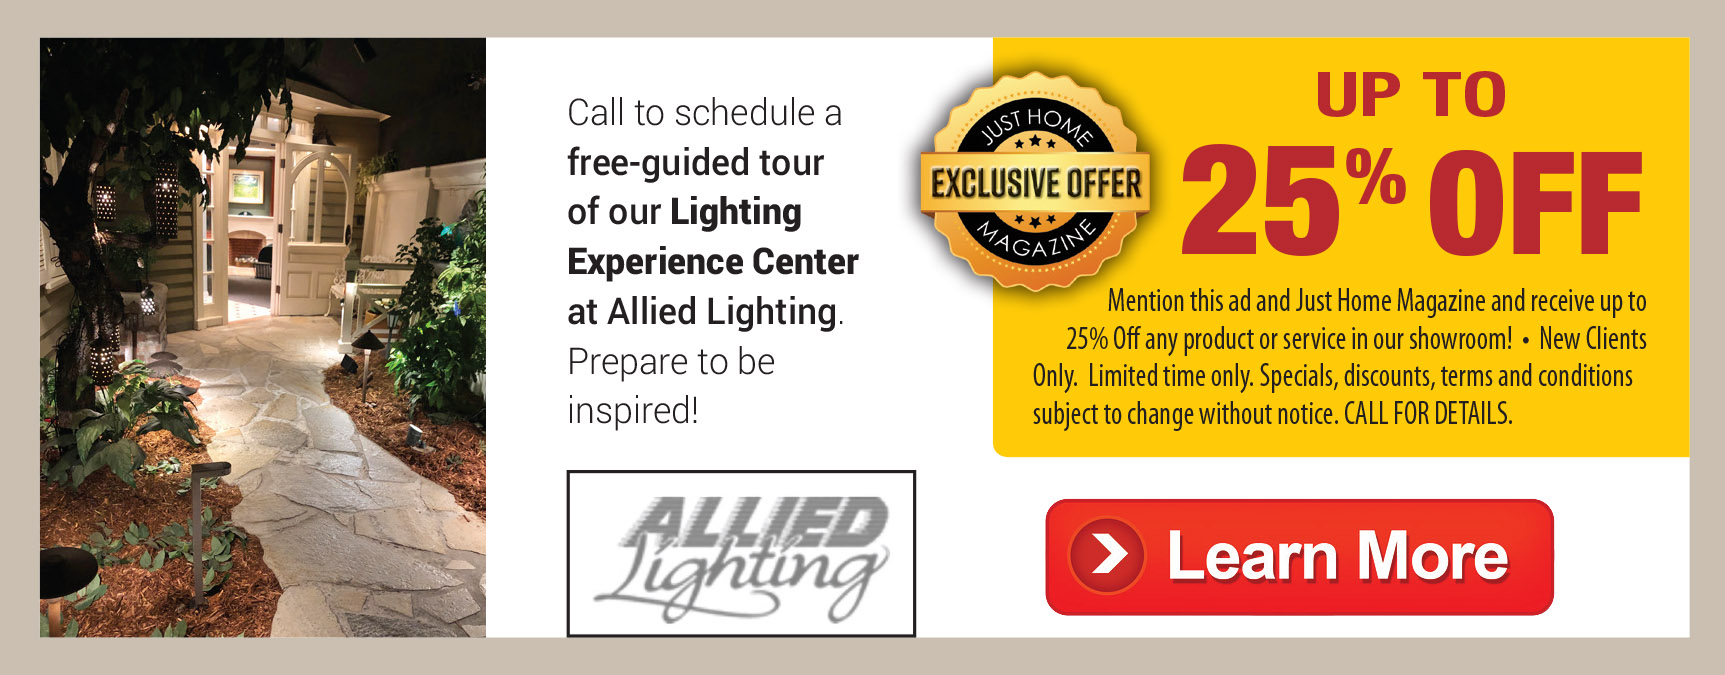 Allied Lighting_Offer_Reg_03-19.jpg